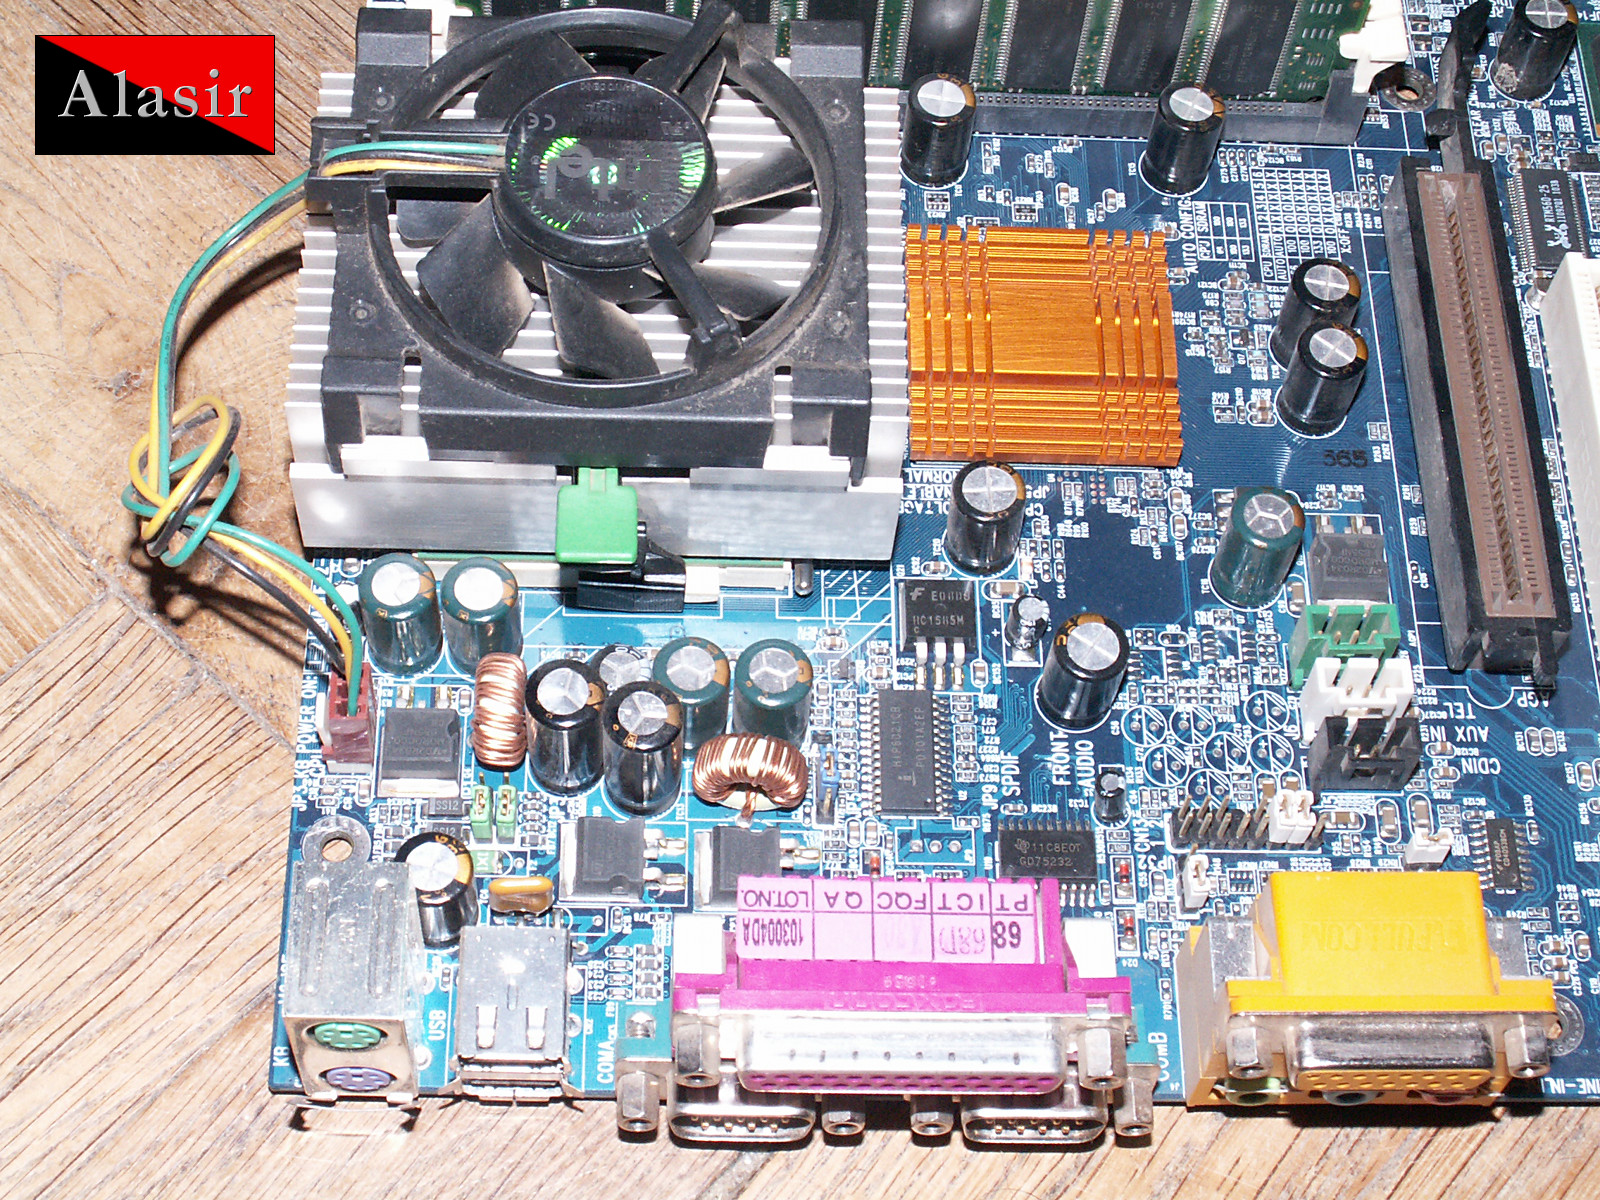 Ramspeed Intel Pentium Iii 1 00ghz With Gigabyte 60xe And